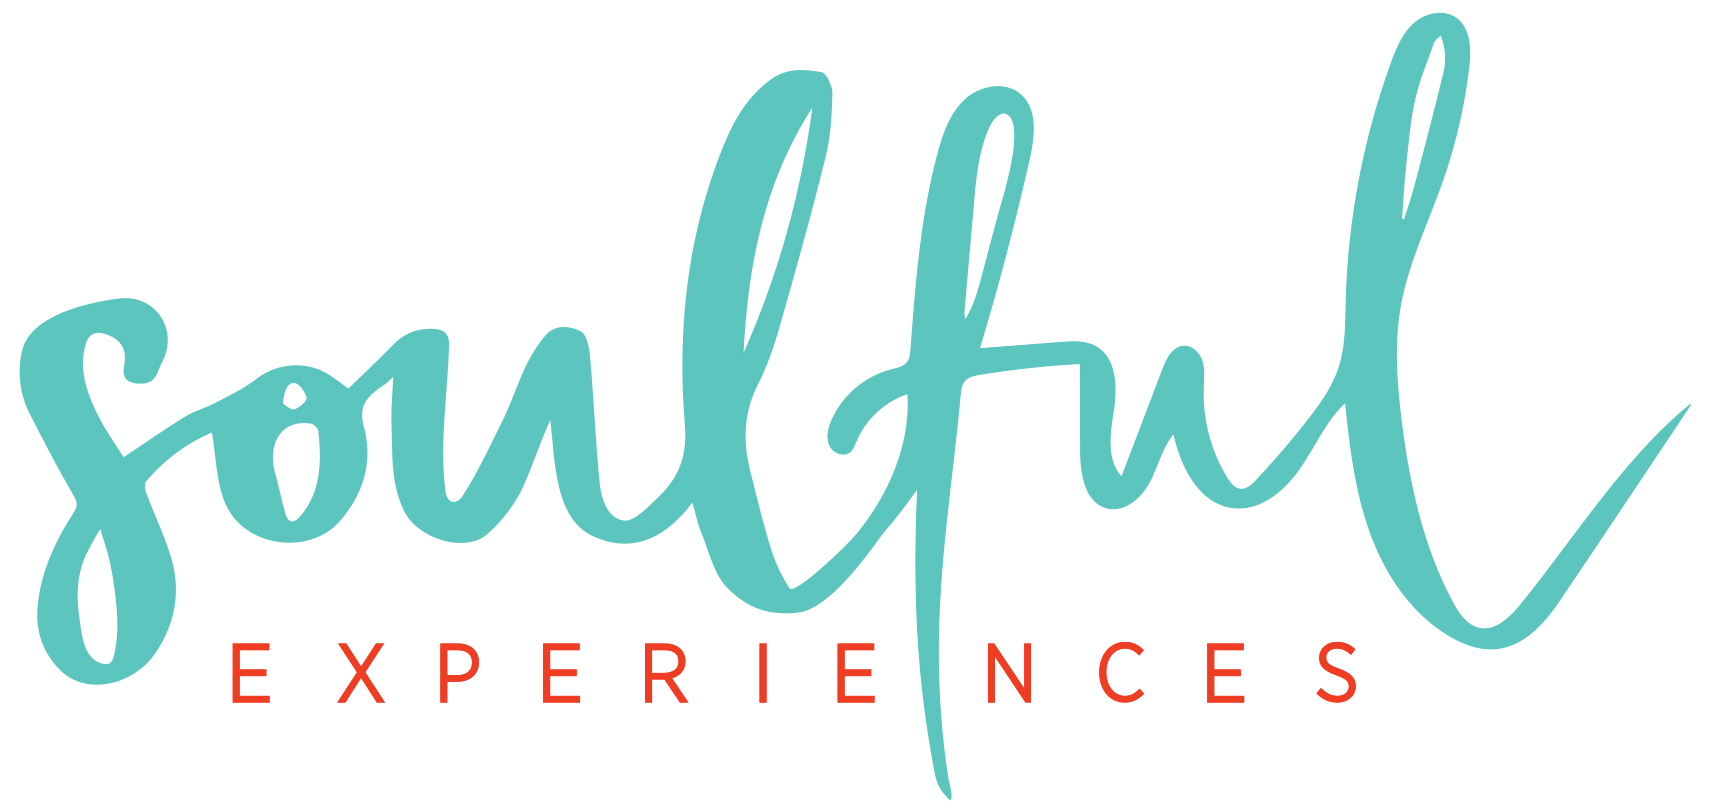 soulful experiences_colour logo.jpg